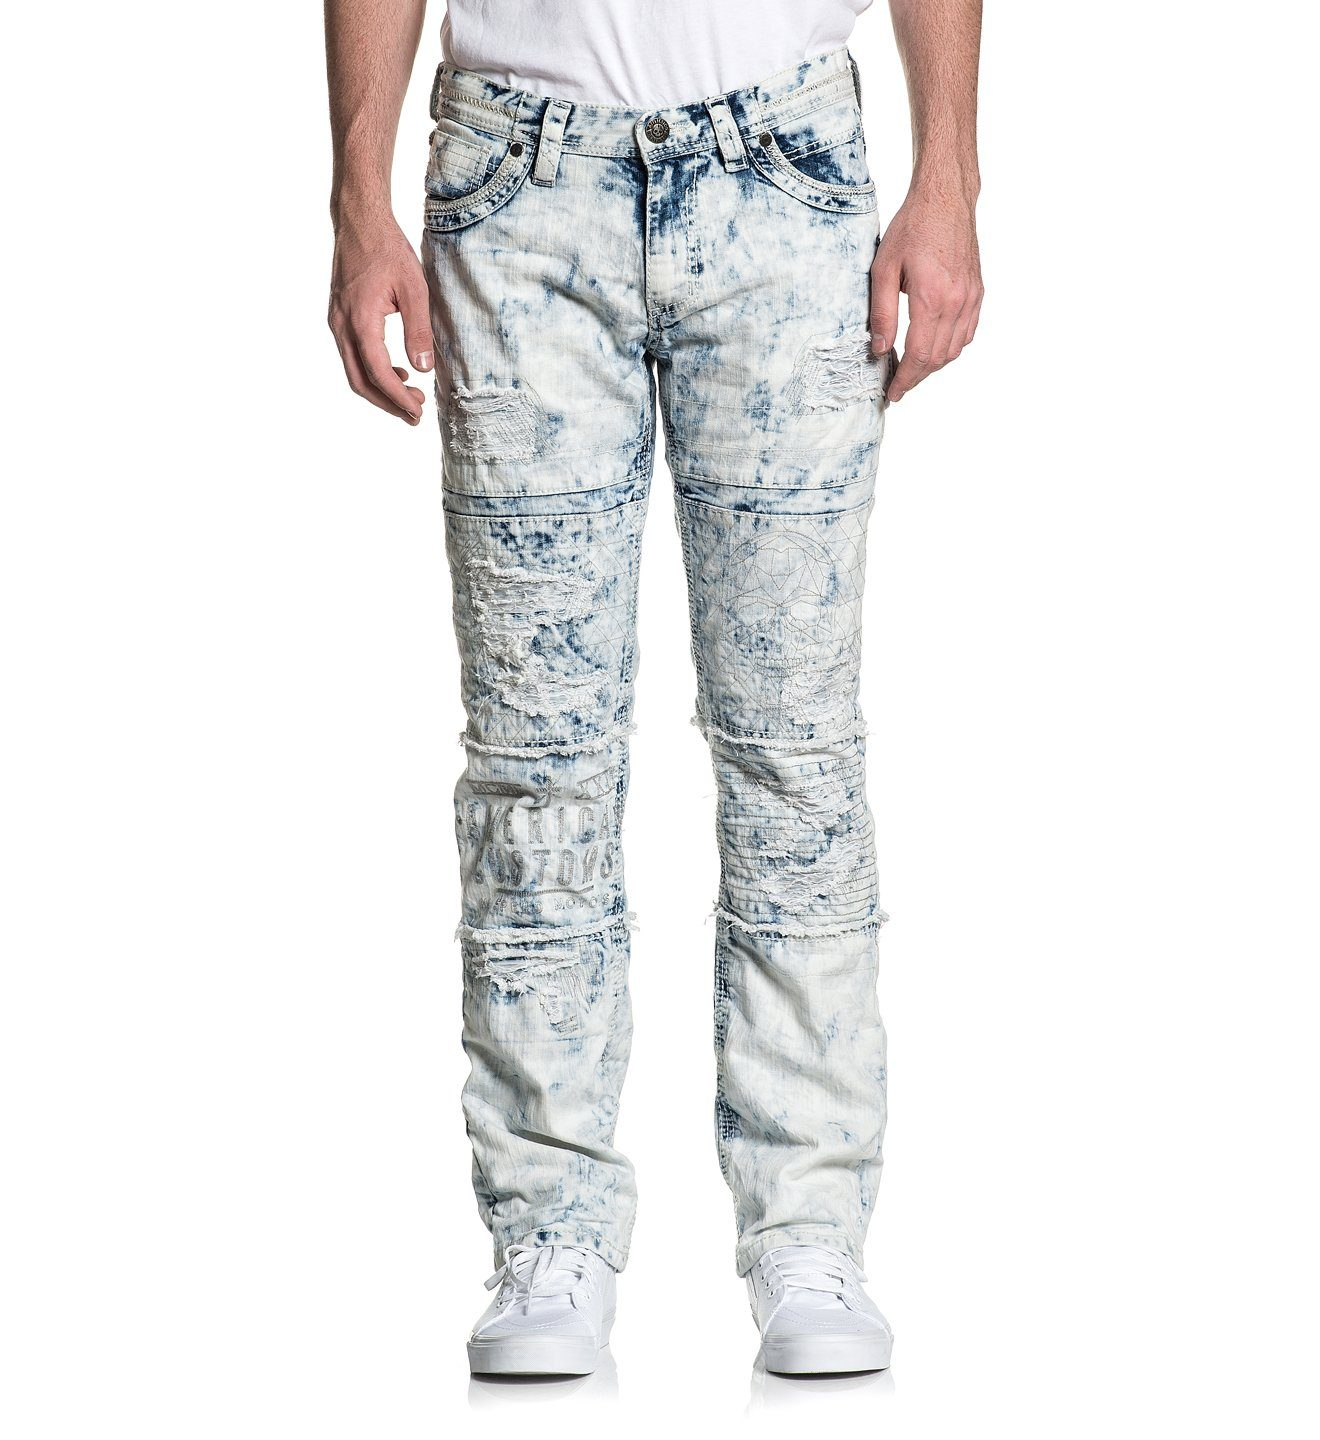 Ace Fallen Nomad - Mens Denim Bottoms - Affliction Clothing